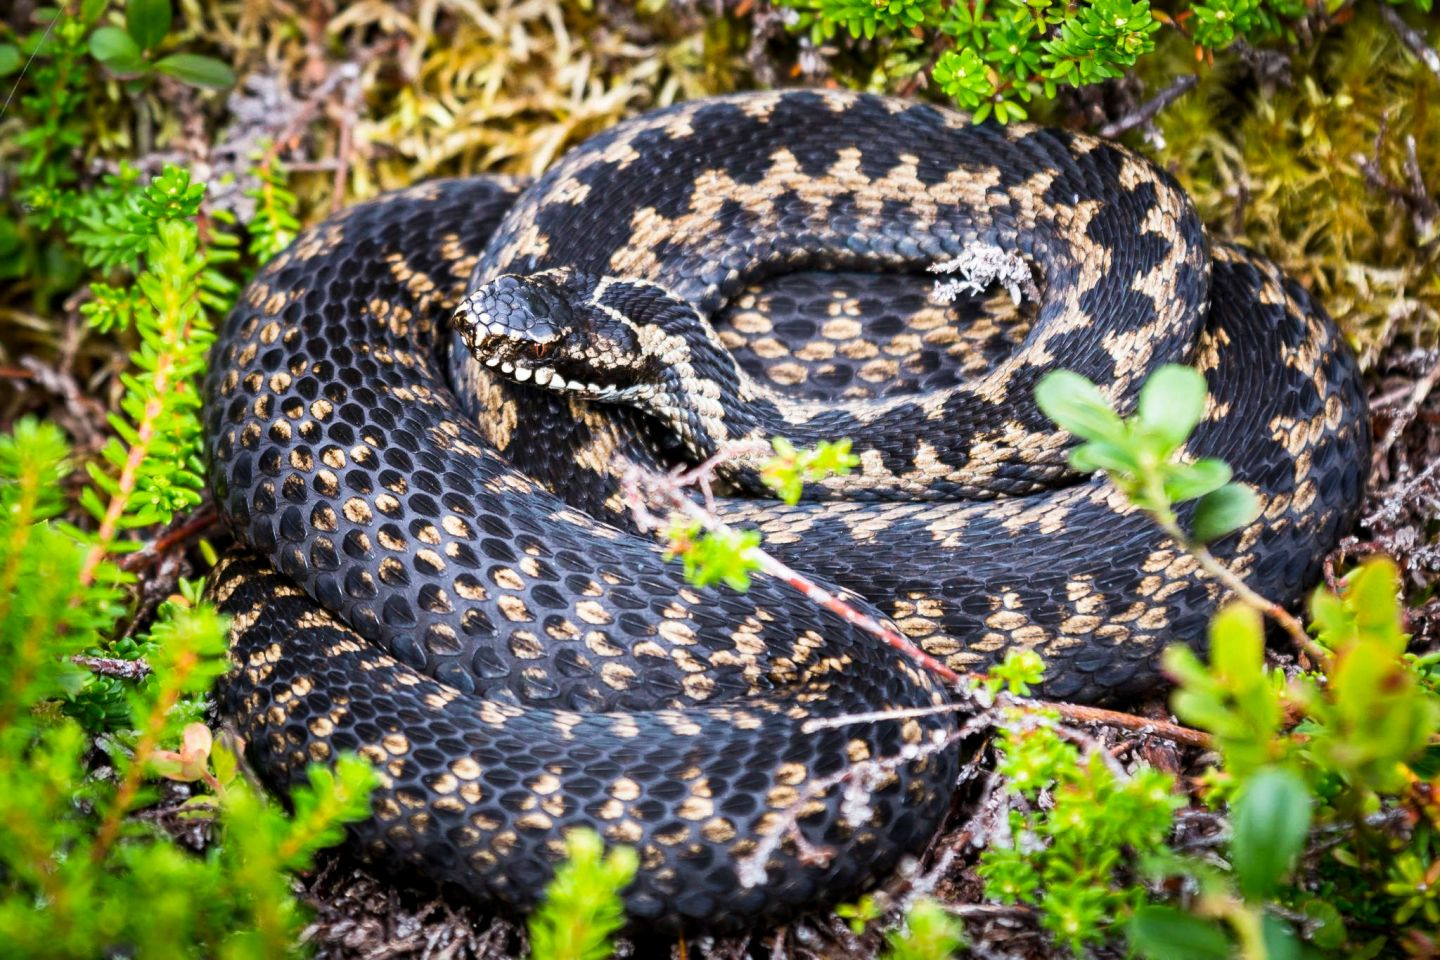 Snakes, part of the Arctic wildlife you'll find in Finnish Lapland